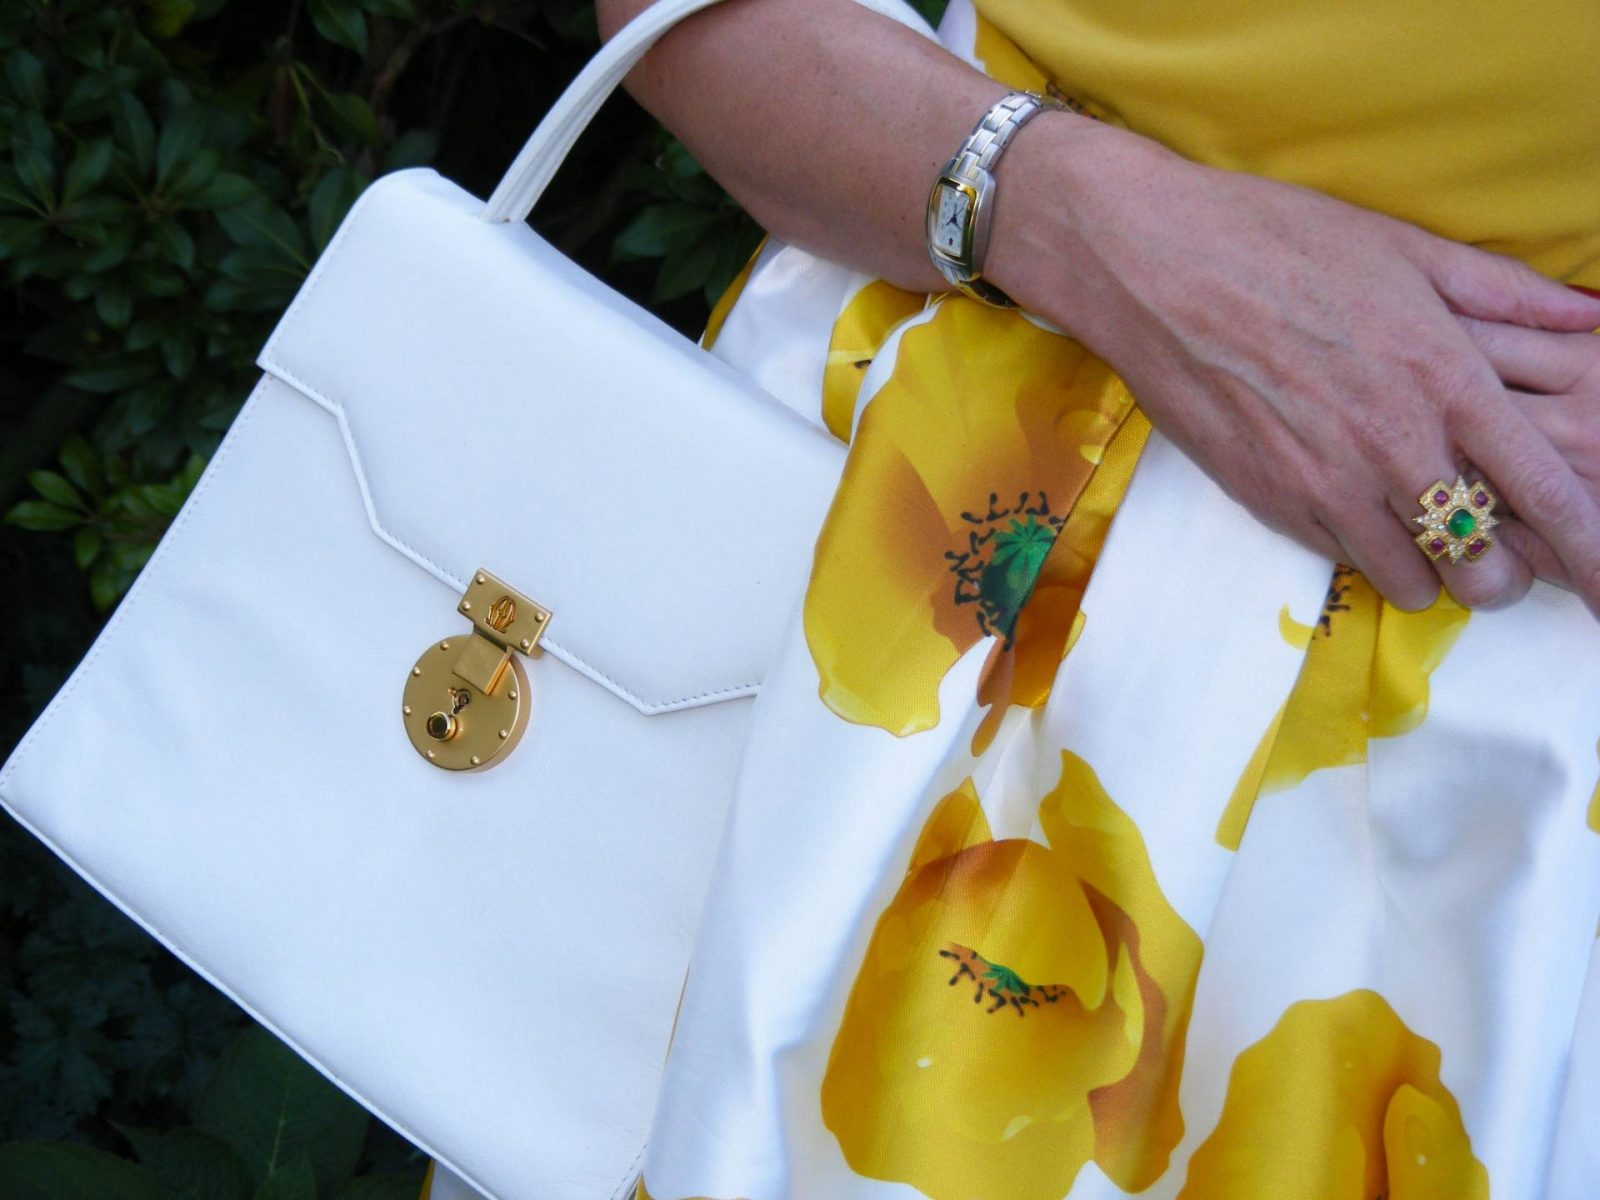 Michelangelo white leather bag Romwe RomweYellow Floral Print Skirt Jane Norman top